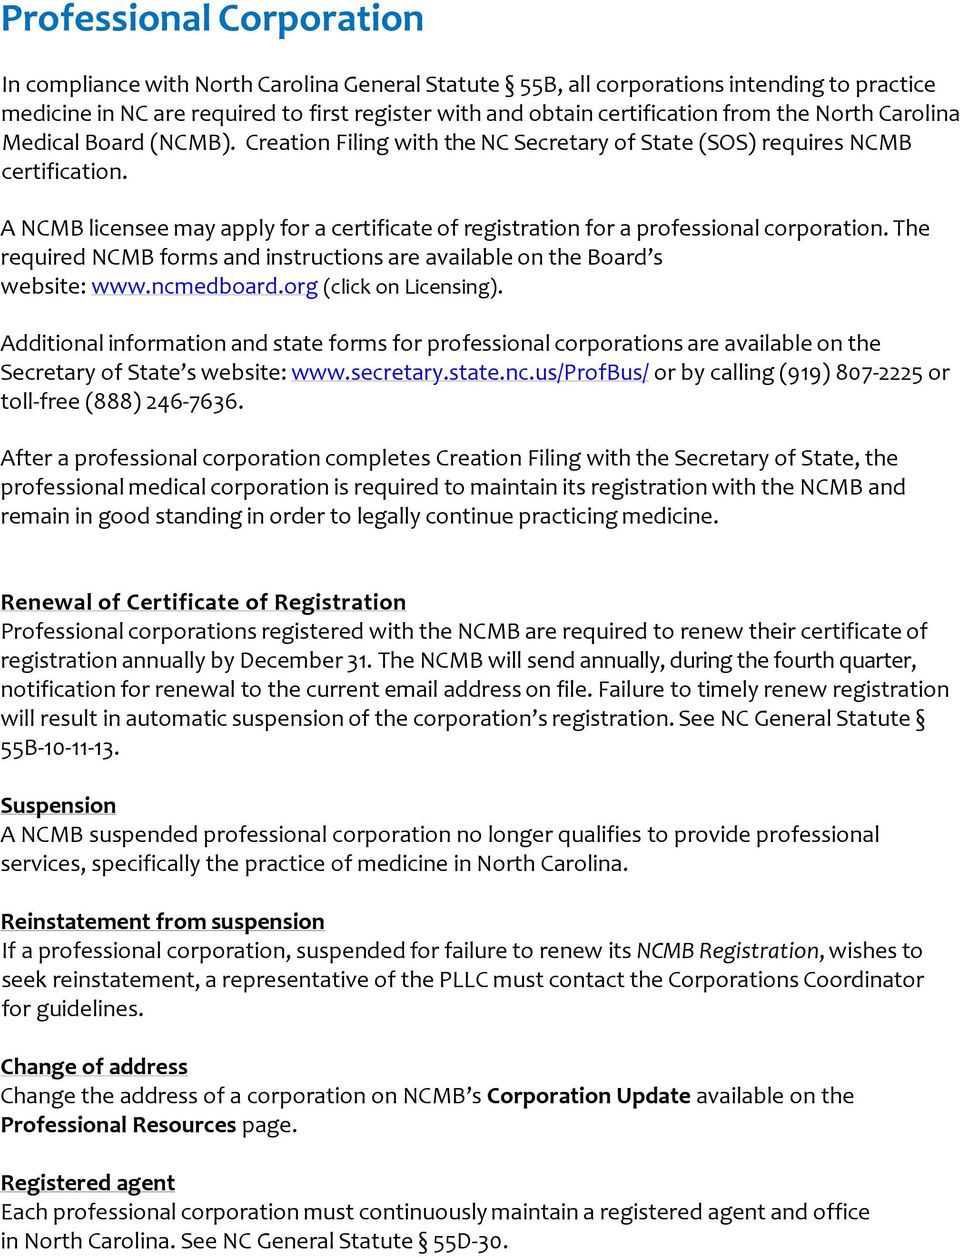 A NCMB licensee may apply for a certificate of registration for a professional corporation. The required NCMB forms and instructions are available on the Board s website: www.ncmedboard.